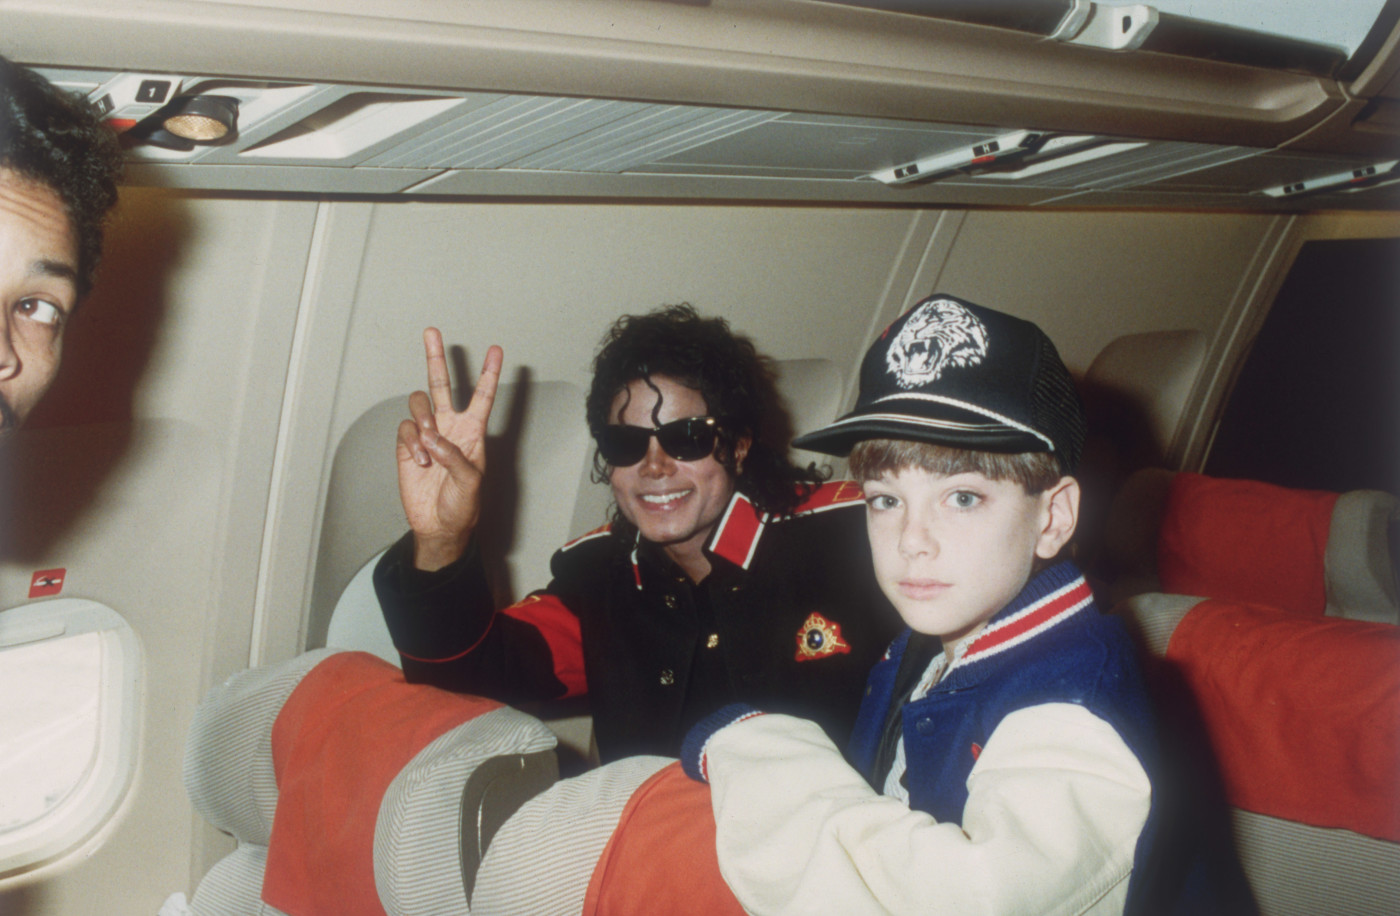 Michael Jackson with 10 year old Jimmy Safechuck on the tour plane